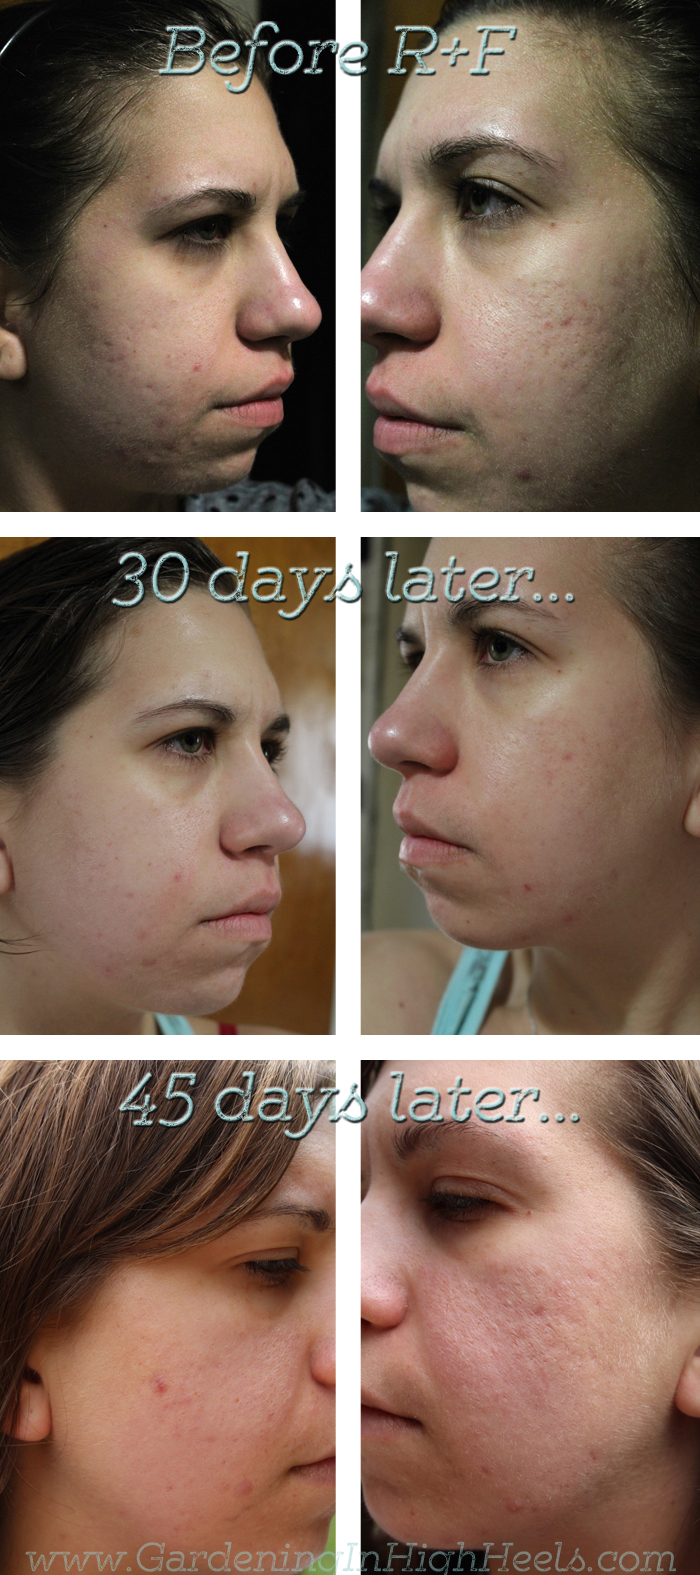 Rodan and Fields skincare transformation.